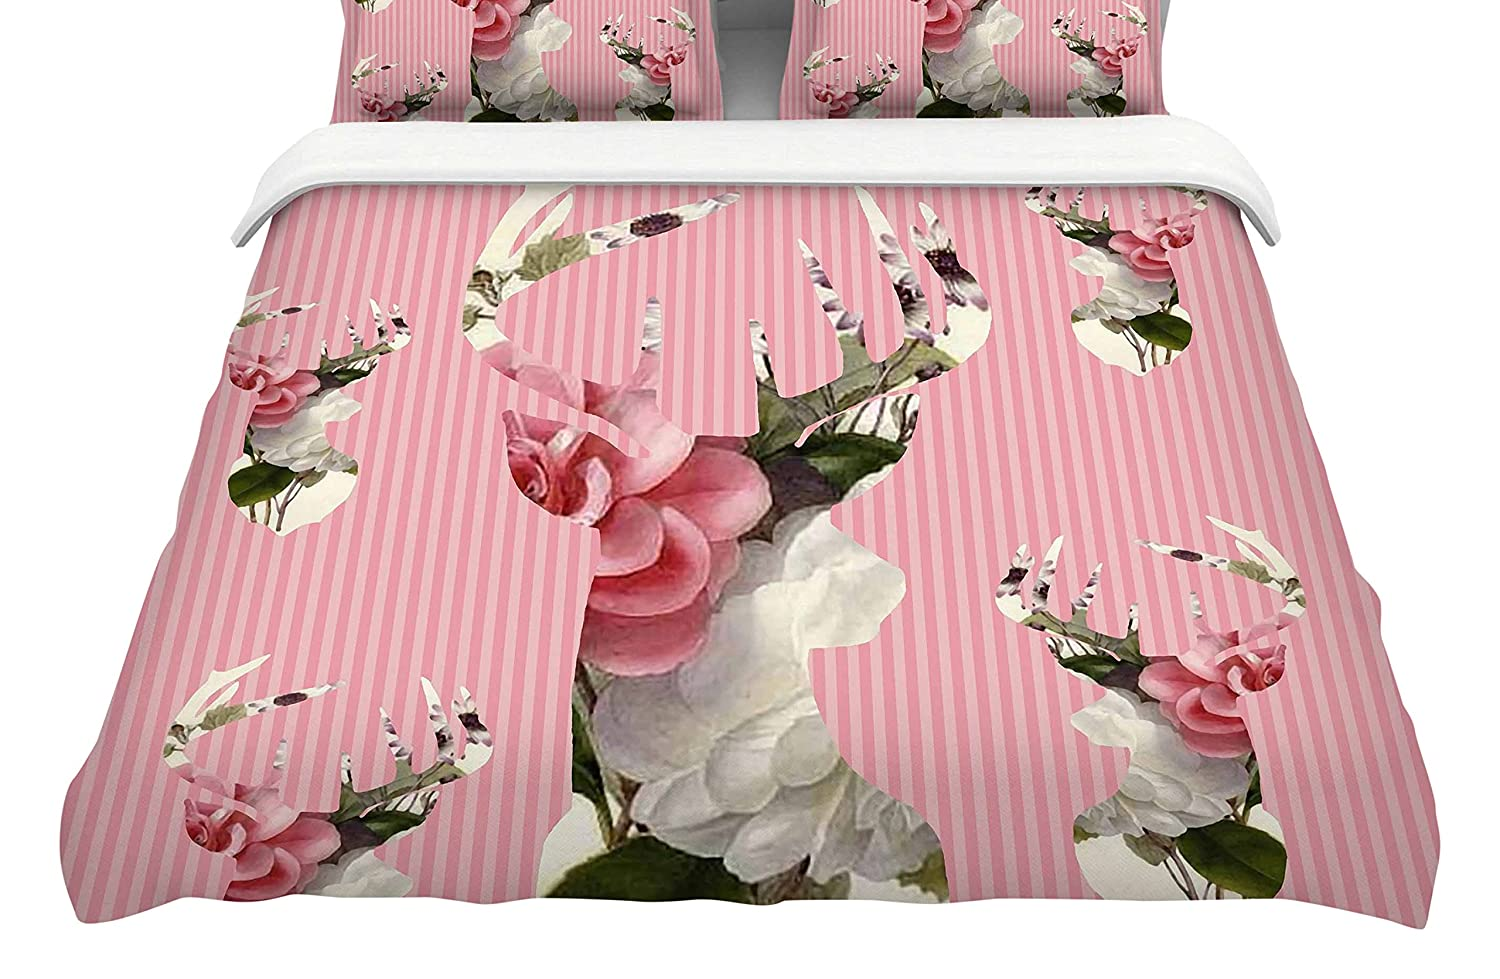 Kess InHouse Suzanne Carter Floral Deer Pink White Queen Cotton Duvet Cover, 88-Inch